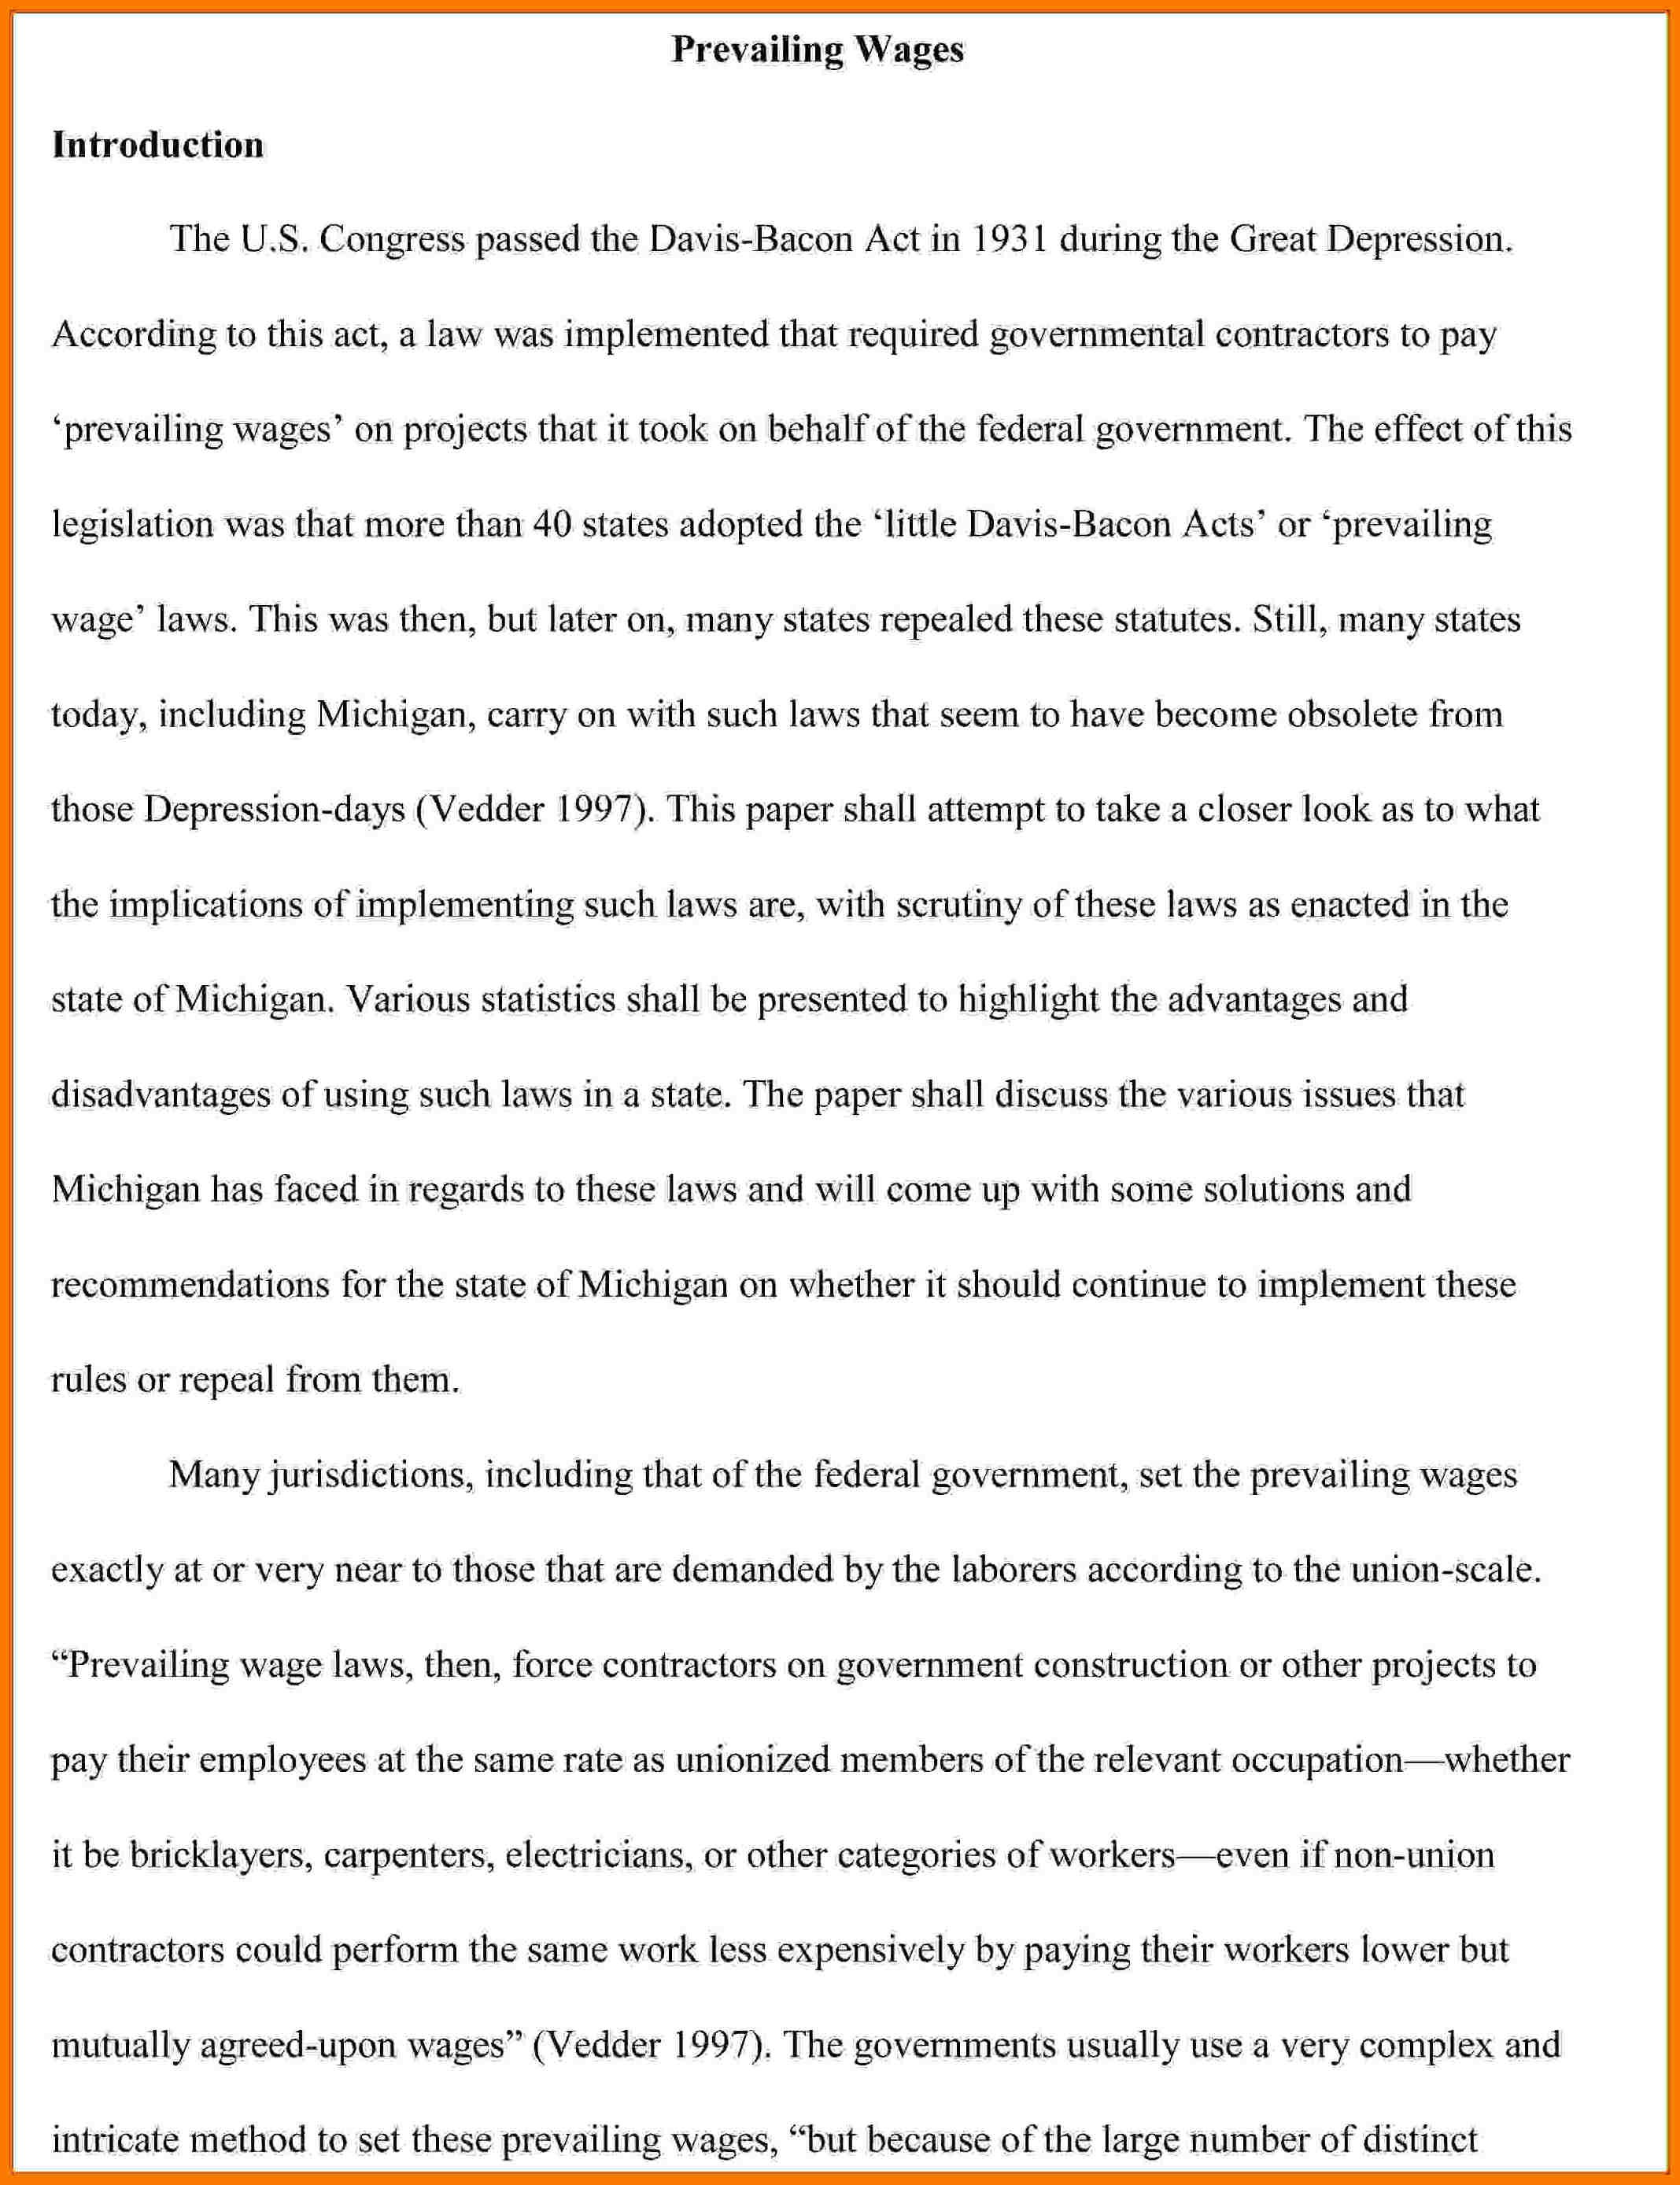 003 Introduction To Research Paper Example Collection Of Solutions Apa Fearsome A How Write An Pdf Paragraph For Mla Full